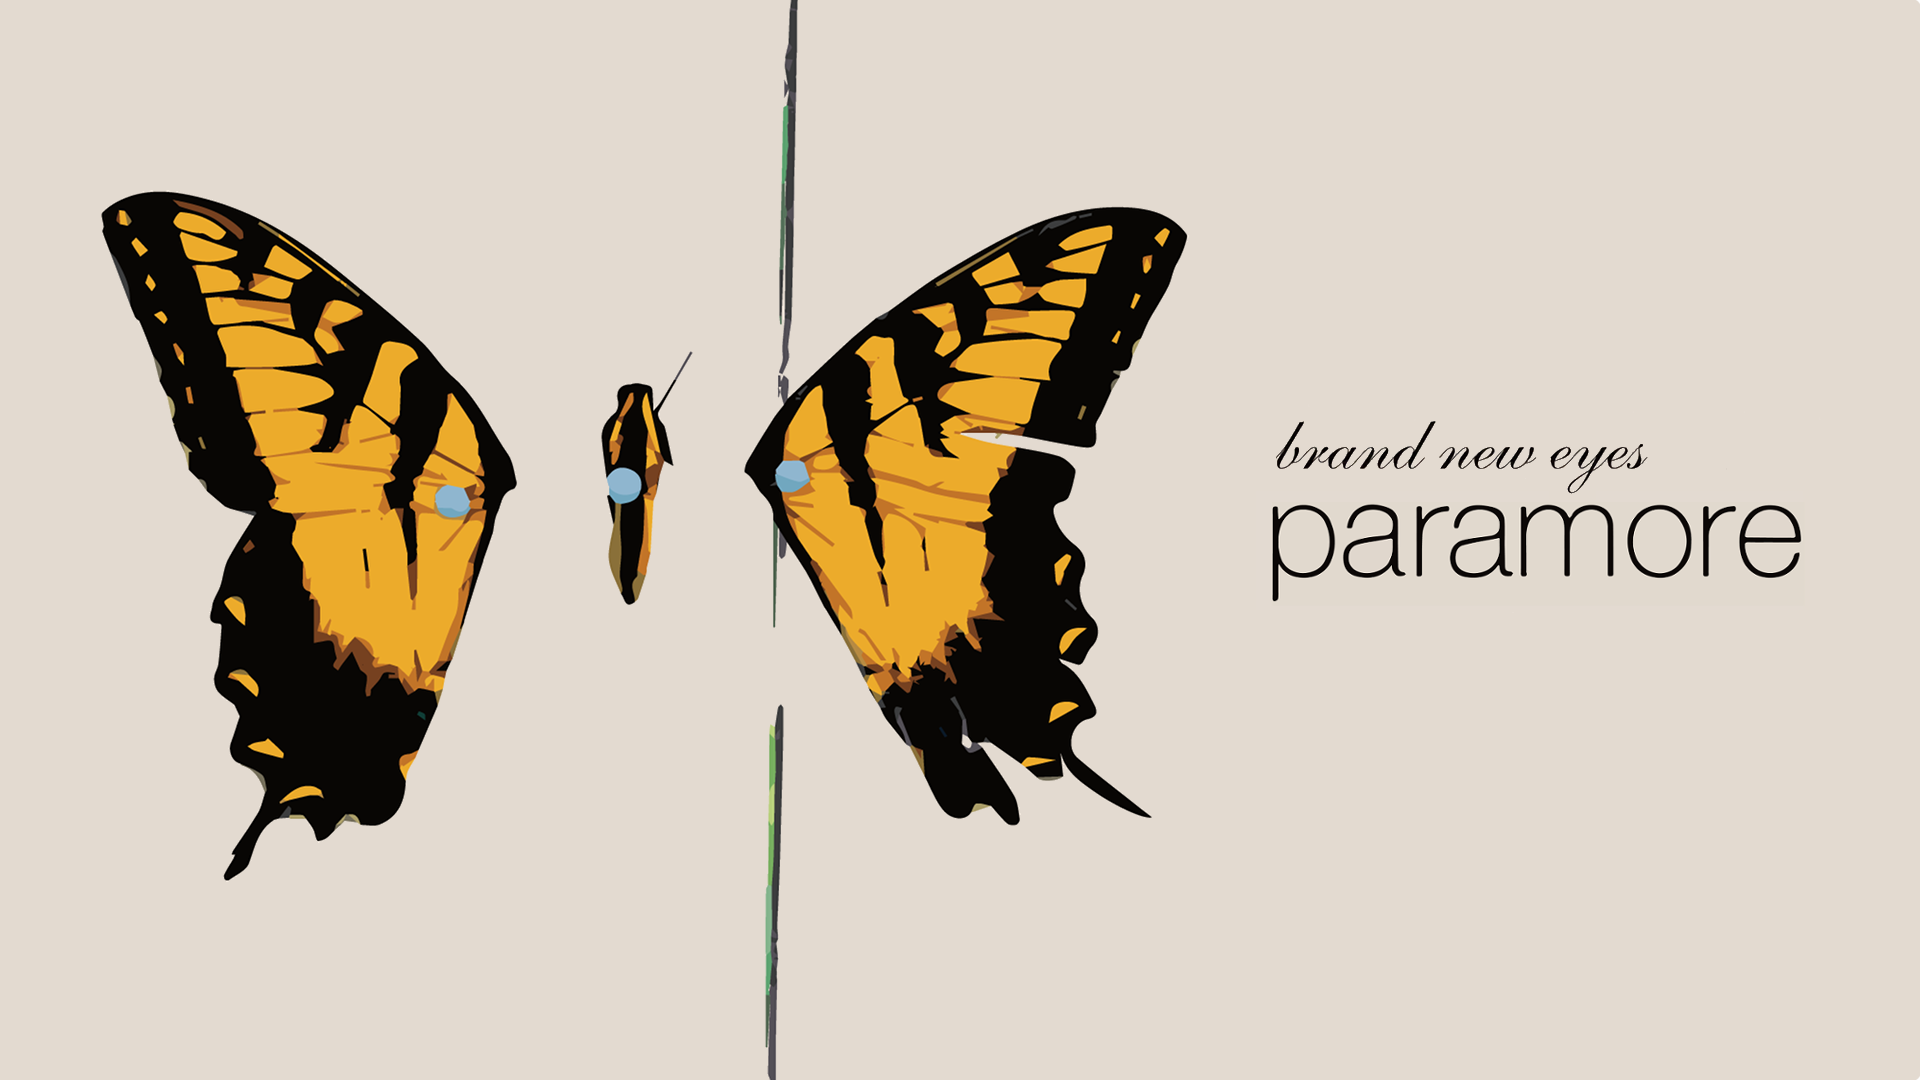 Paramore Brand New Eyes Cover 1996039 Hd Wallpaper